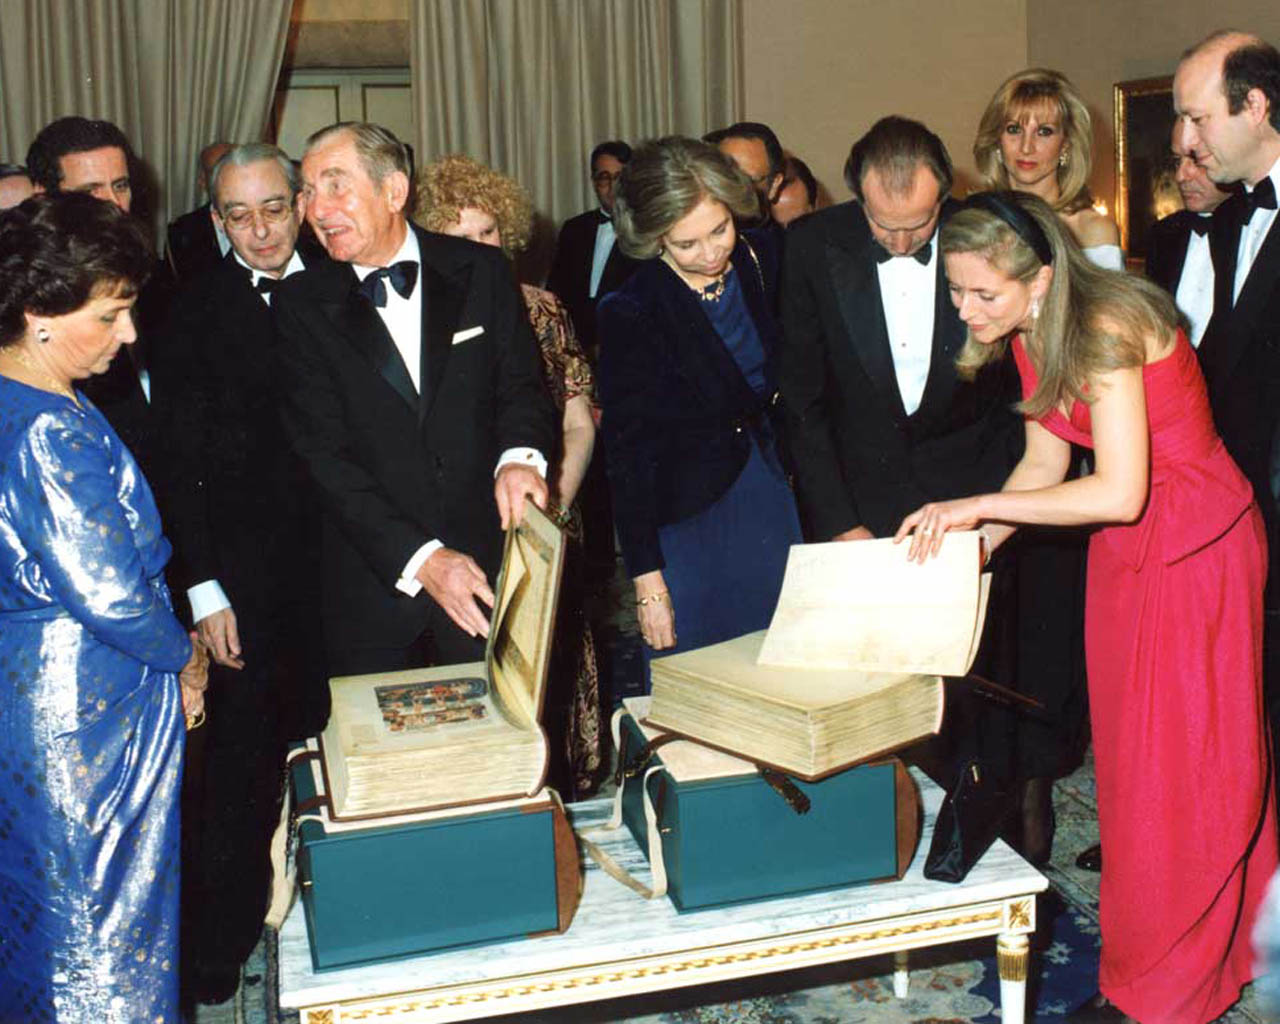 """Linda Falter discusses the production of the facsimile of the Alba Bible with their Majesties King Juan Carlos I and Queen Sofia. Image © Copyright  <small>For use visit: <a href=""""https://www.facsimile-editions.com/copyright/"""">Copyright T&C Facsimile Editions Ltd</a></small>"""